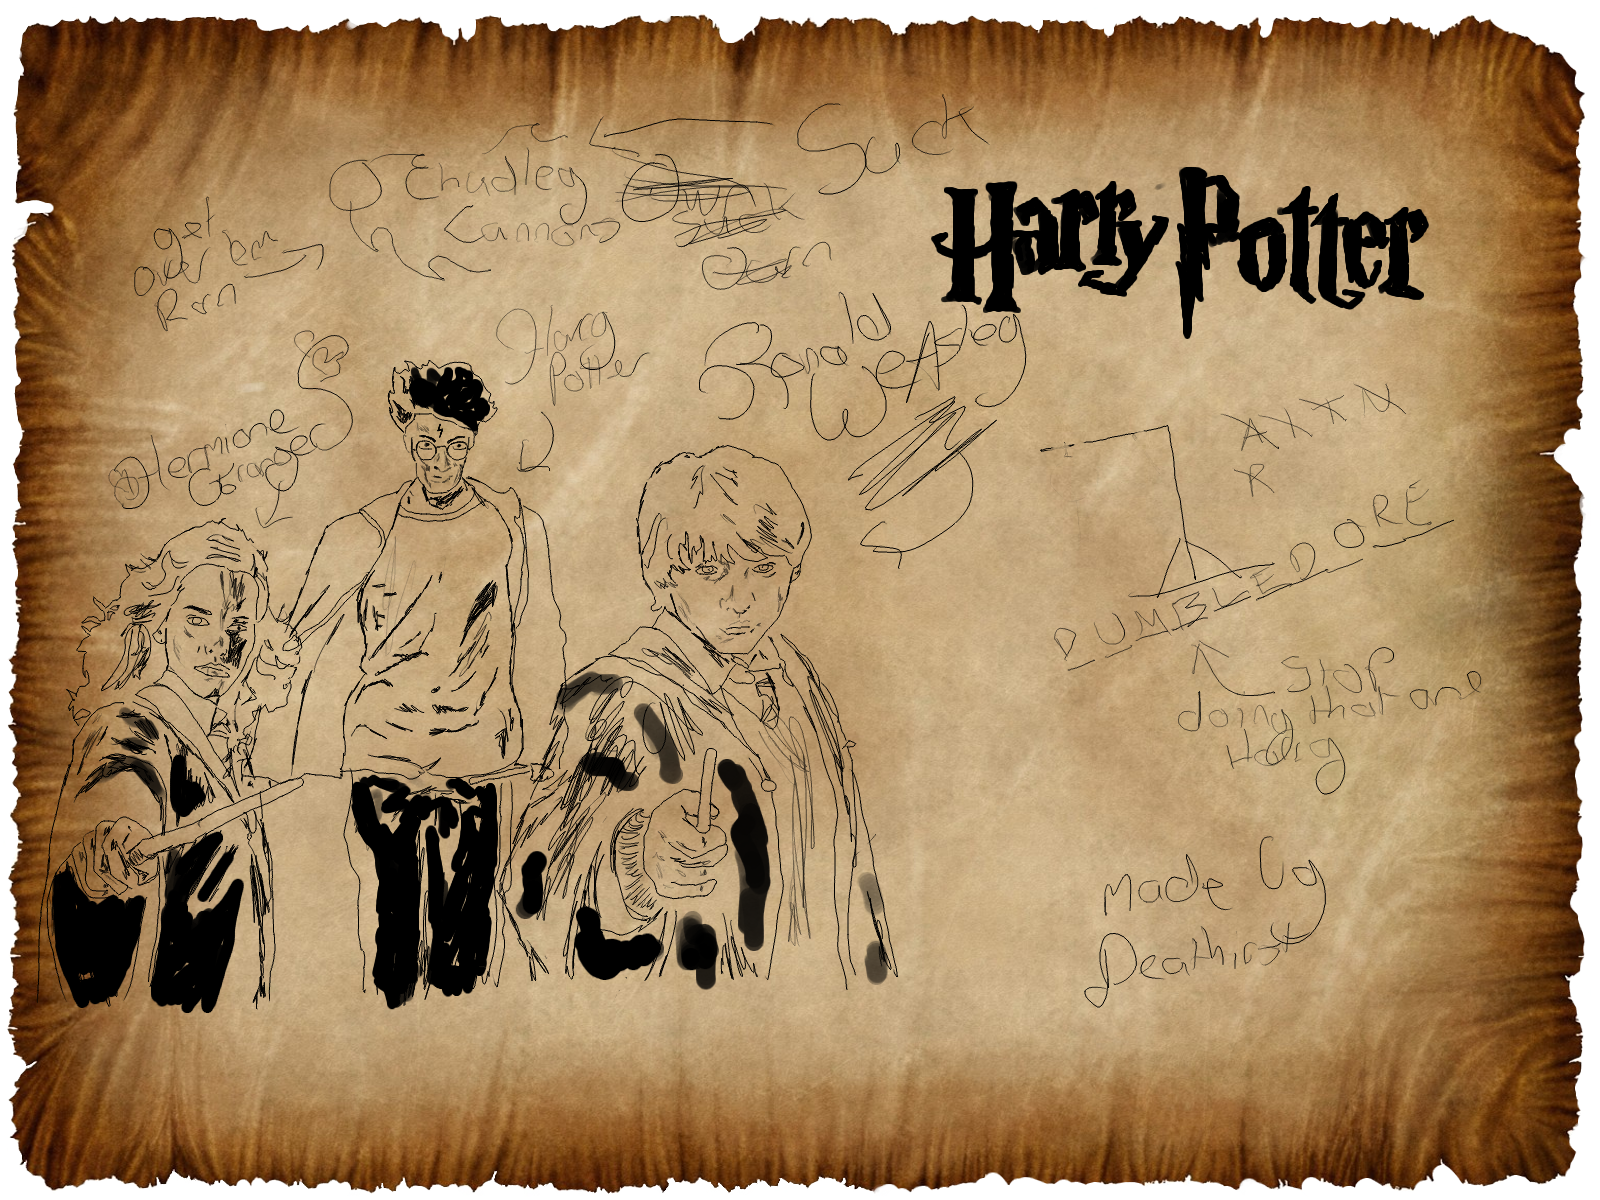 Good Wallpaper Harry Potter Quote - -Harry-Potter-harry-potter-31065797-1600-1200  Pic_238291.png